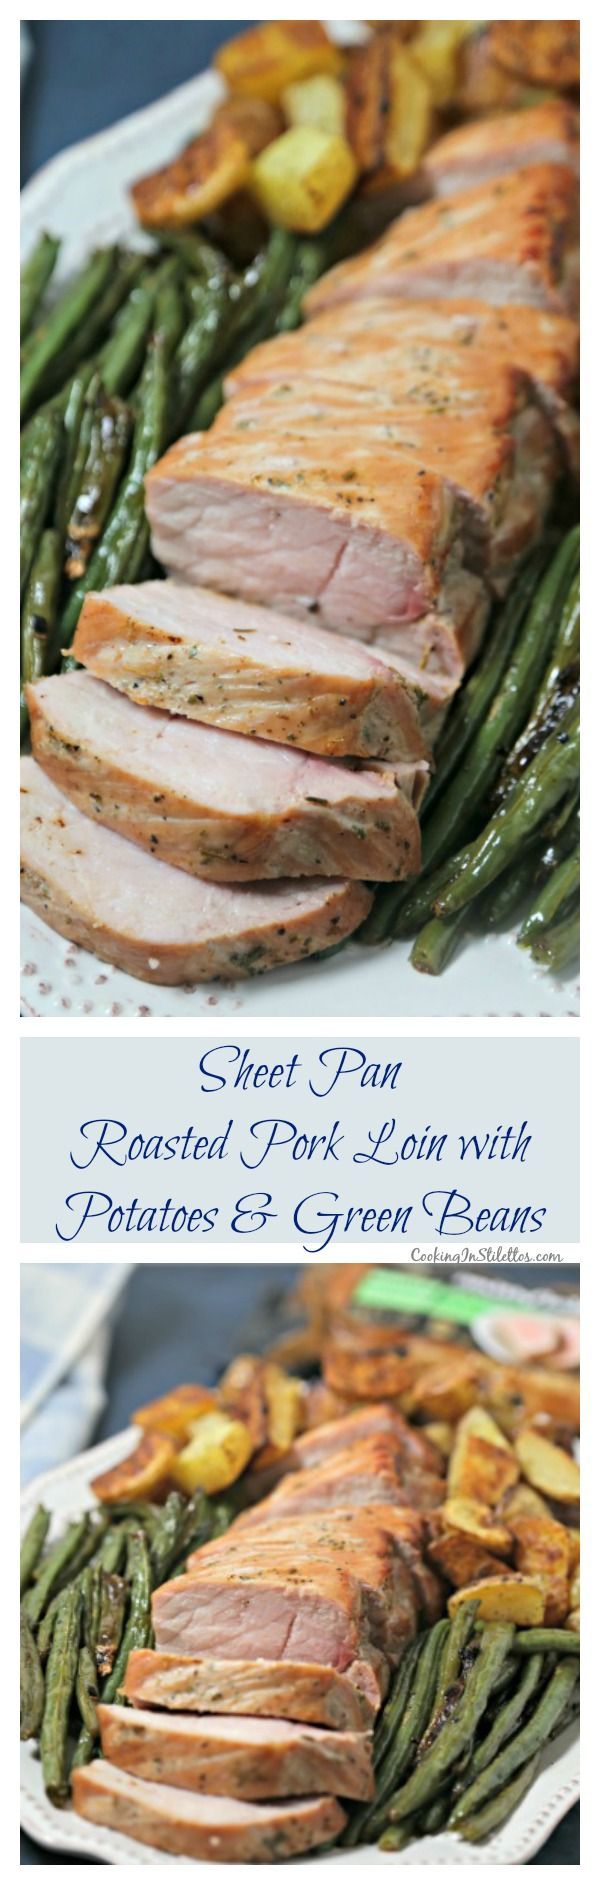 For busy weeknights, make this scrumptious Sheet Pan Roasted Pork Loin with Potatoes and Green Beans from CookingInStilettos.com. Ready in 30 minutes thanks to Smithfield® Marinated Fresh Pork, this easy sheet pan dinner will be a family favorite!  #RealFlavorRealFast With @SmithfieldFoods and @Walmart. #AD | Roasted Pork Loin | Sheet Pan Dinner | 30 Minute Meal | Weeknight Dinner  | Pork | Oven Roasted Pork | Pork Loin Filet | Smithfield Pork | Sheet Pan Recipe via @CookInStilettos